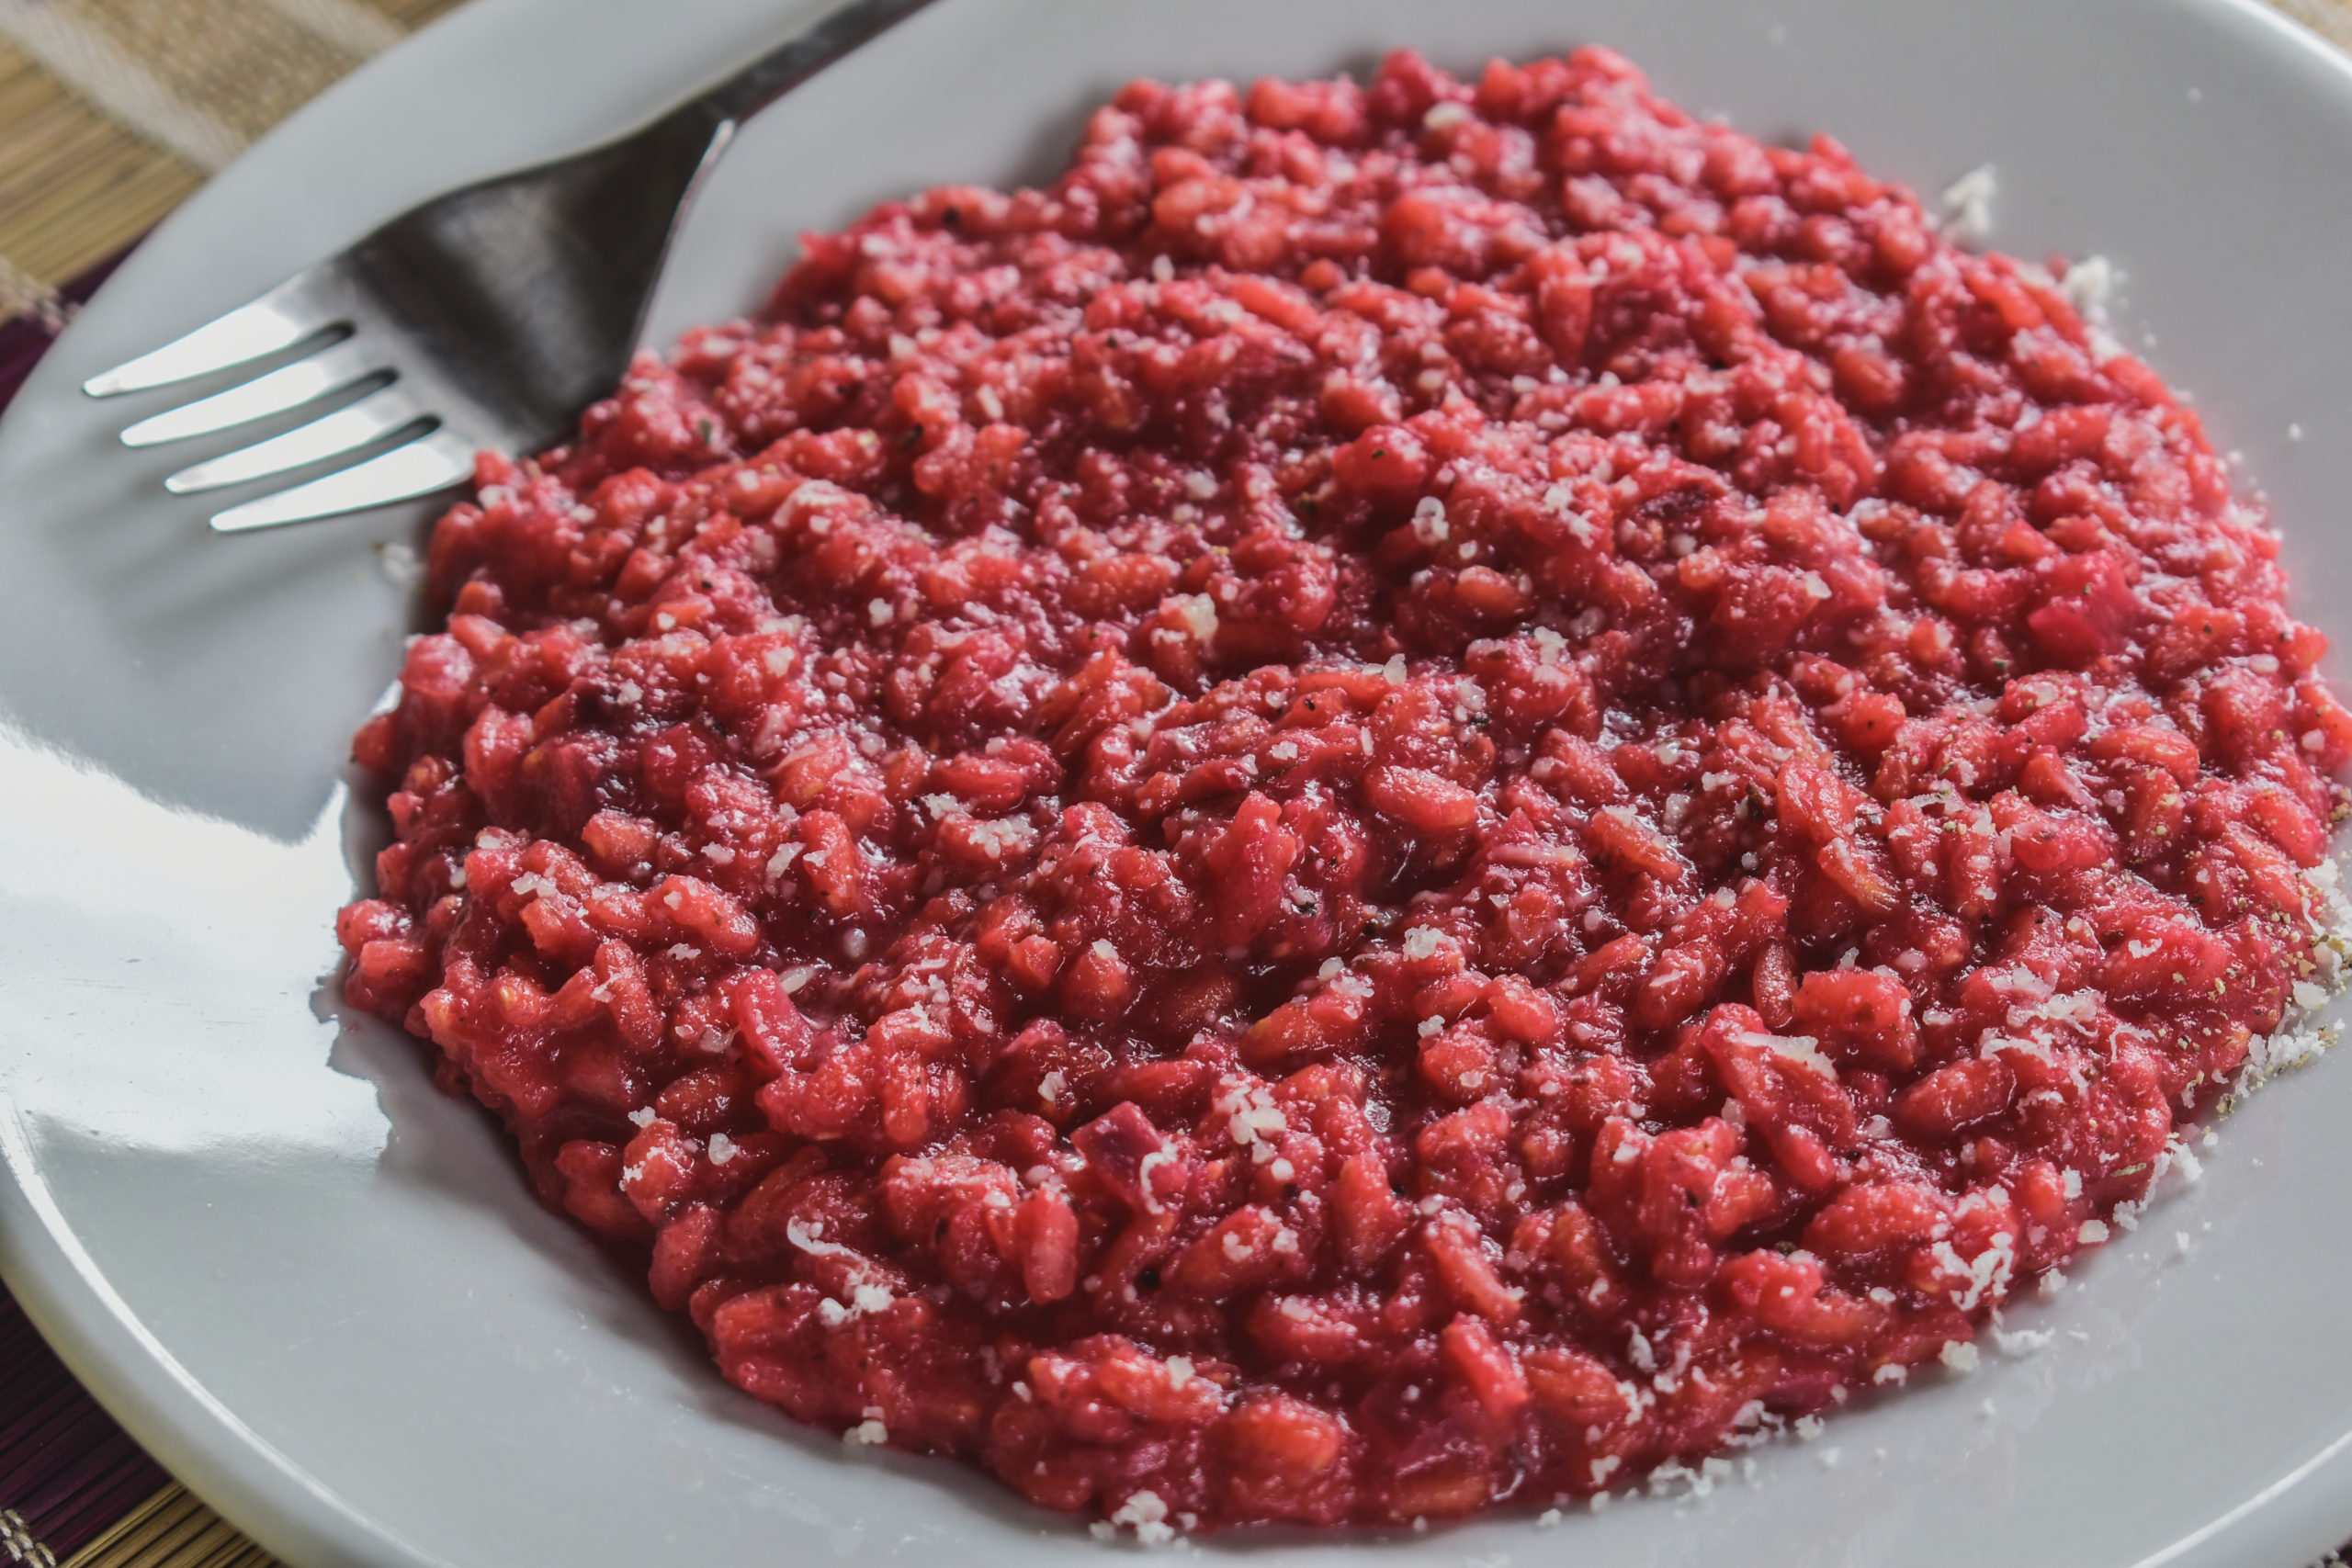 Risotto with red beetroots